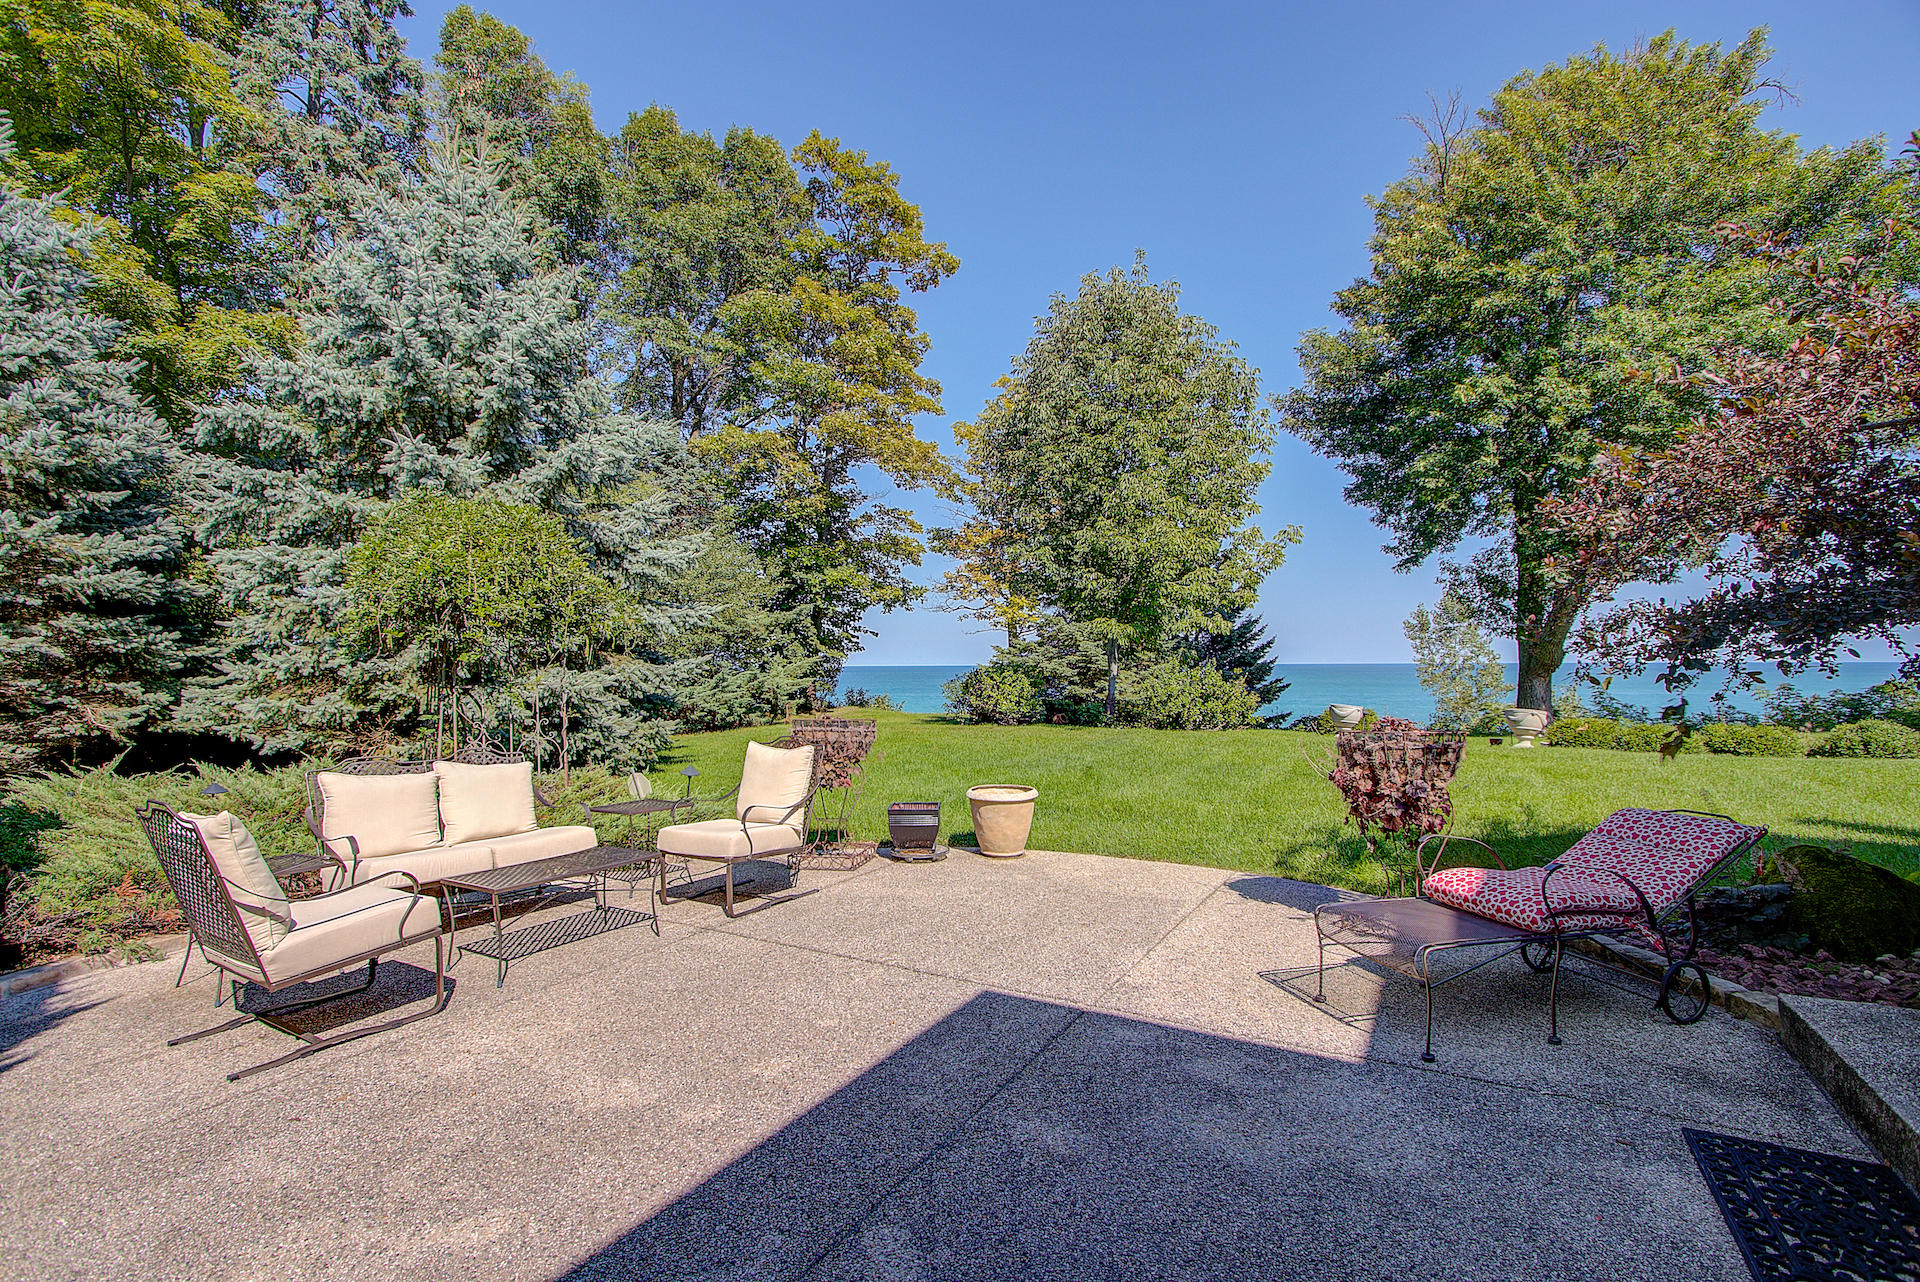 10058 Sheridan Dr, Mequon, Wisconsin 53092, 4 Bedrooms Bedrooms, 9 Rooms Rooms,4 BathroomsBathrooms,Single-family,For Sale,Sheridan Dr,1722937